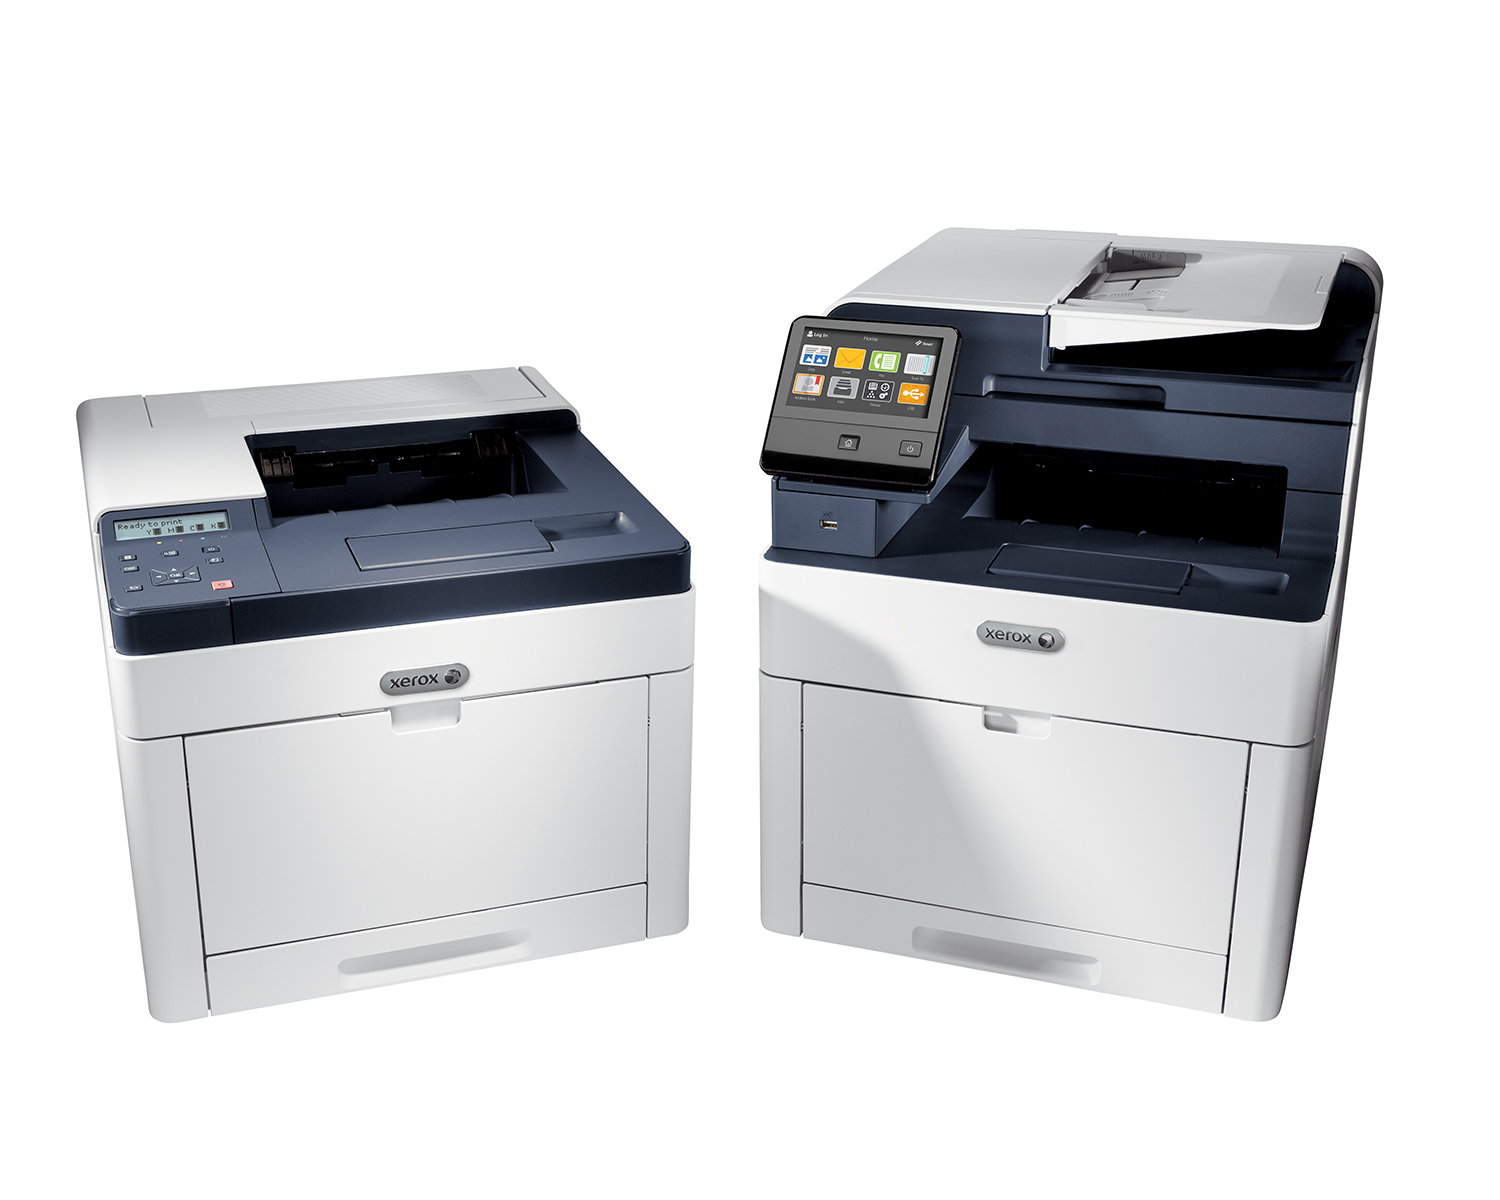 Xerox Phaser 6510 color printer and WorkCentre 6515 color MFP